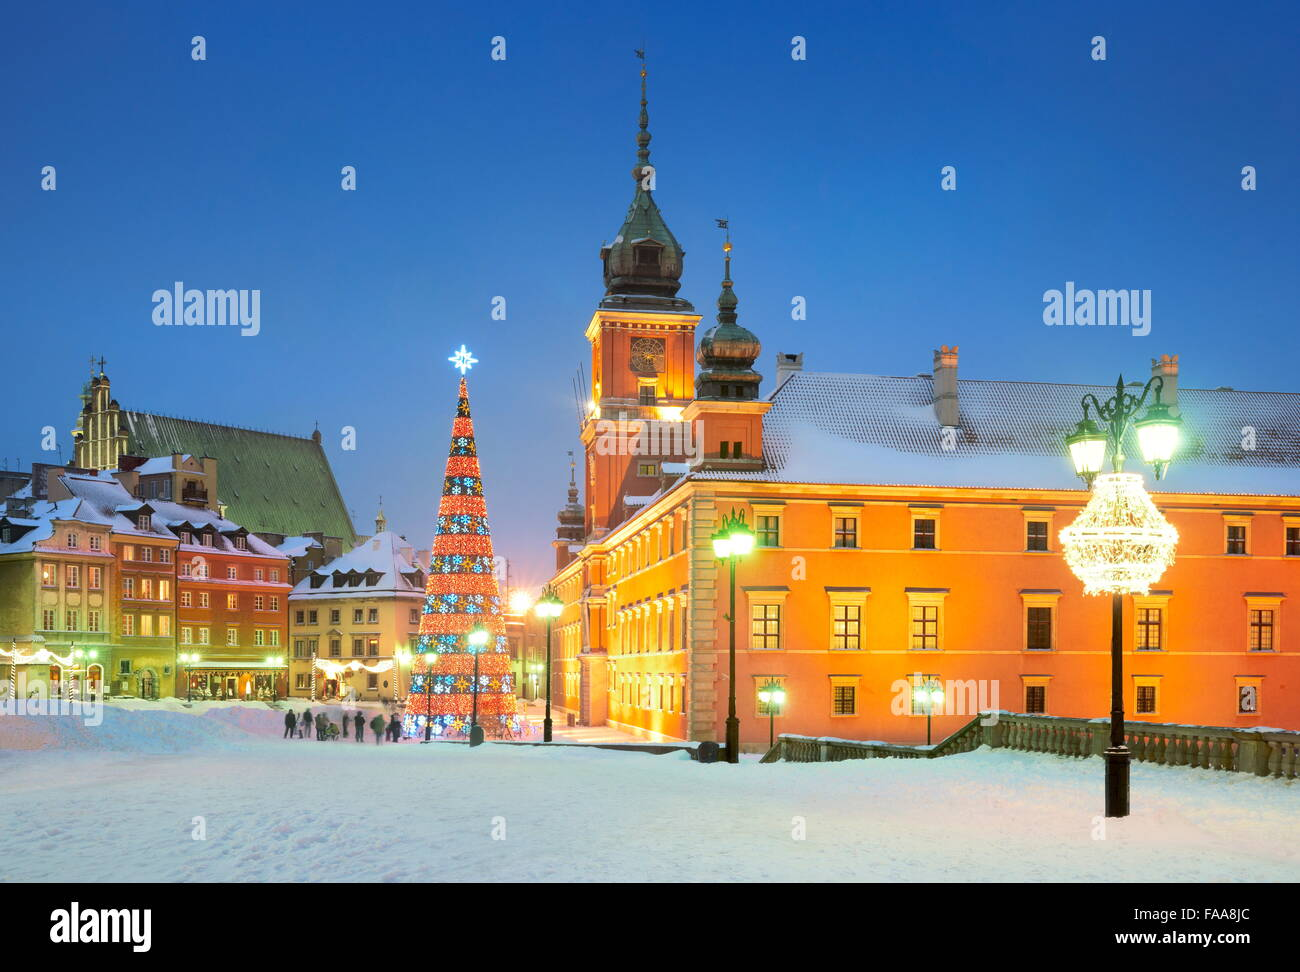 Christmas tree outdoor on the Castle Square, Warsaw City, Poland - Stock Image